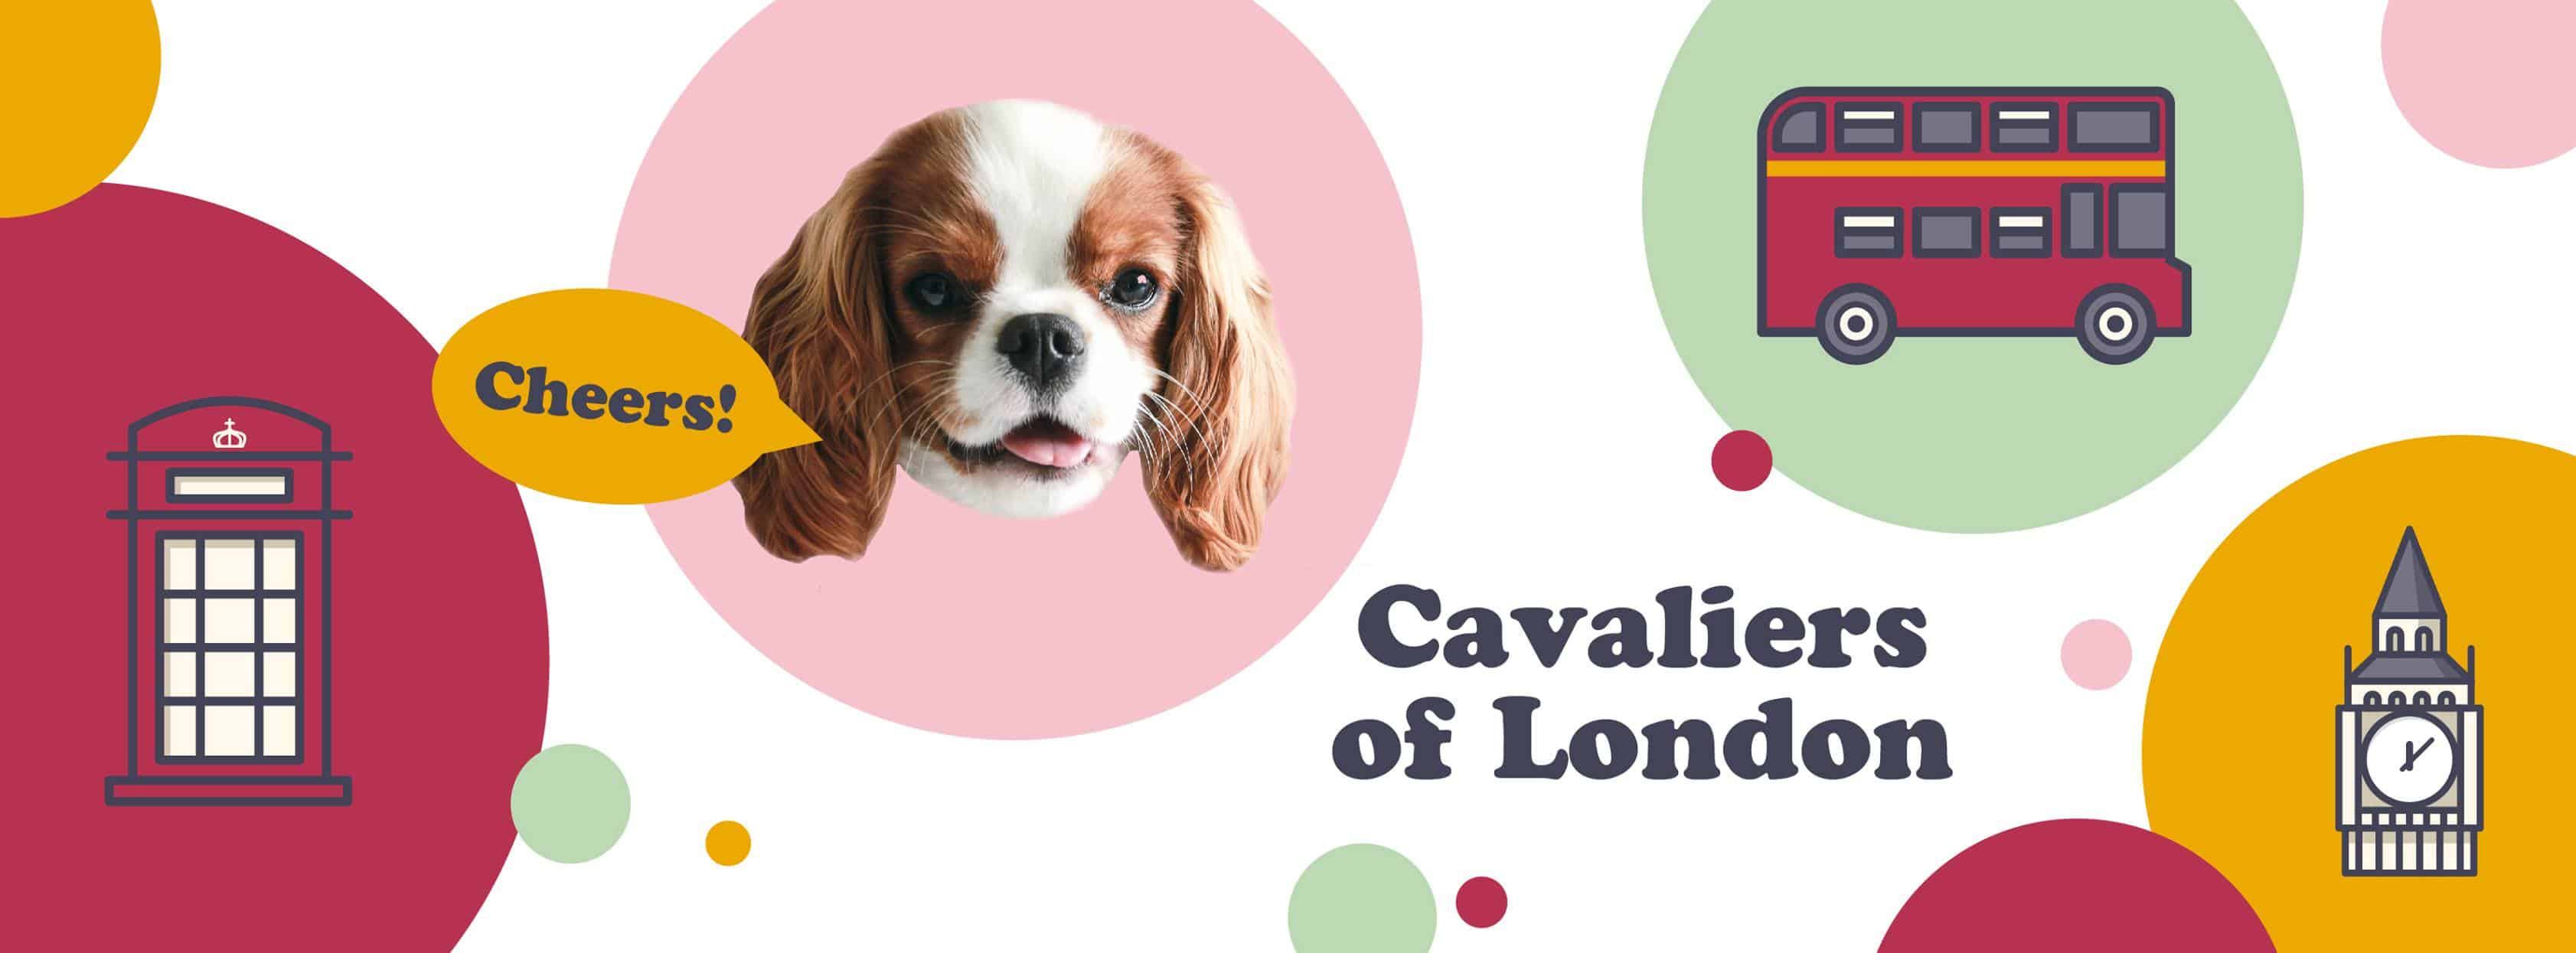 Cavaliers of London Meetup Kensington Gardens